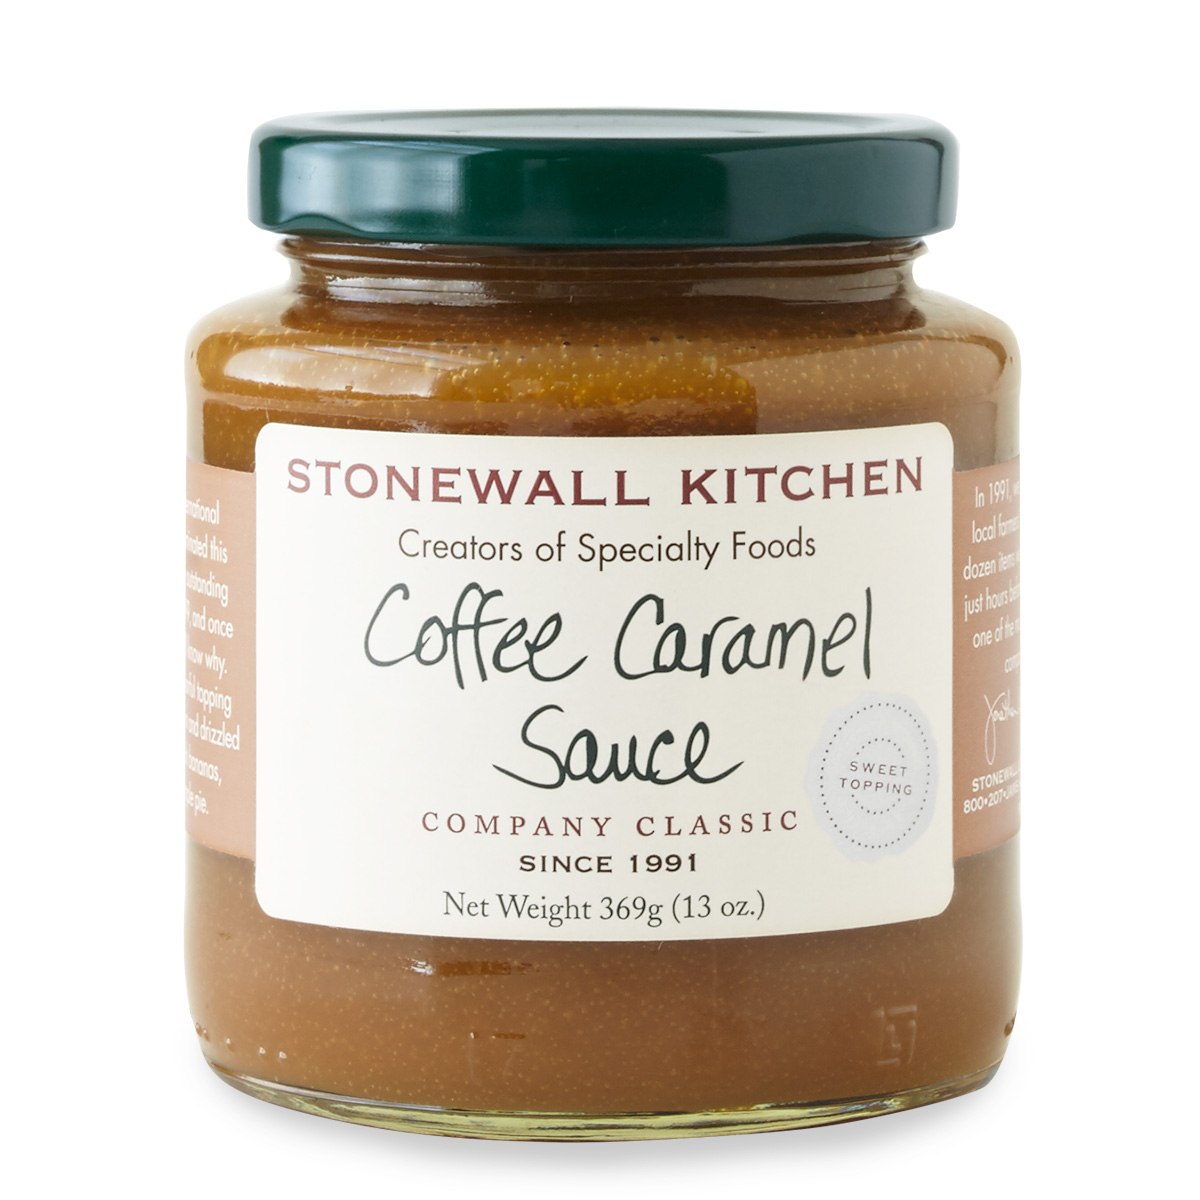 stonewall kitchen com mobile island coffee caramel sauce dessert sauces and candy